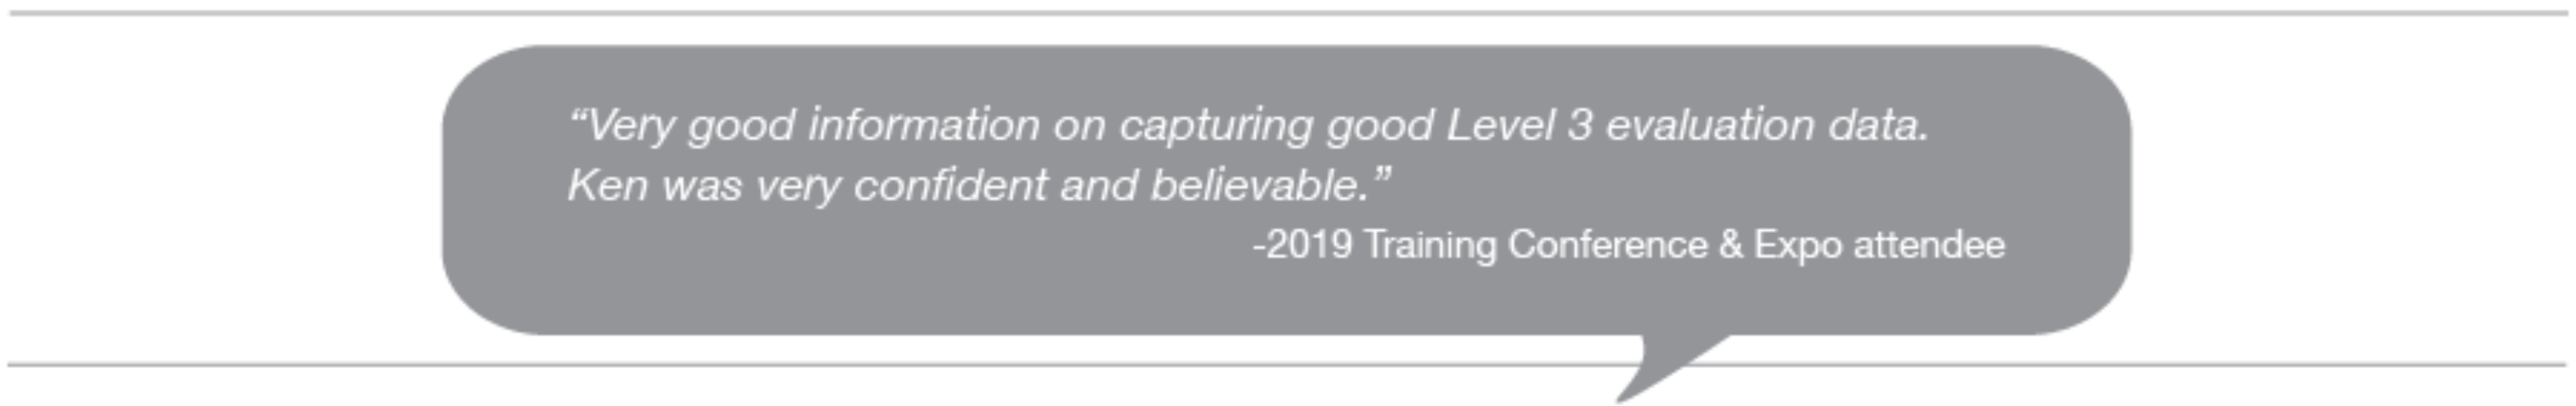 Testimonial: Very good information on capturing good Level 3 evaluation data.